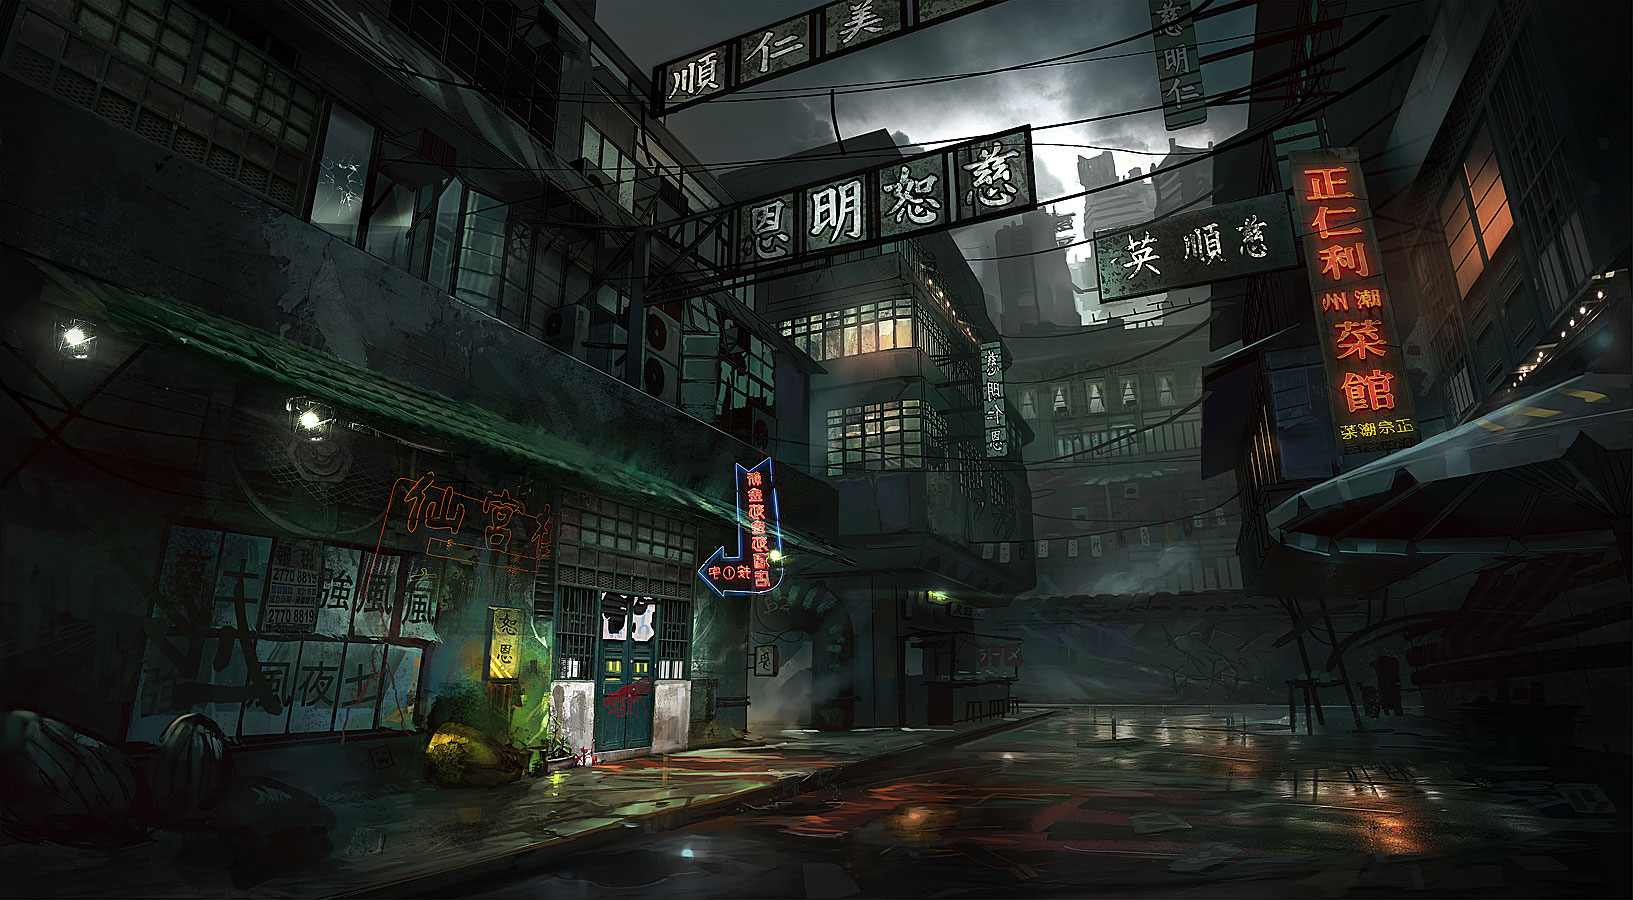 King Tong Street YAO by eWKn